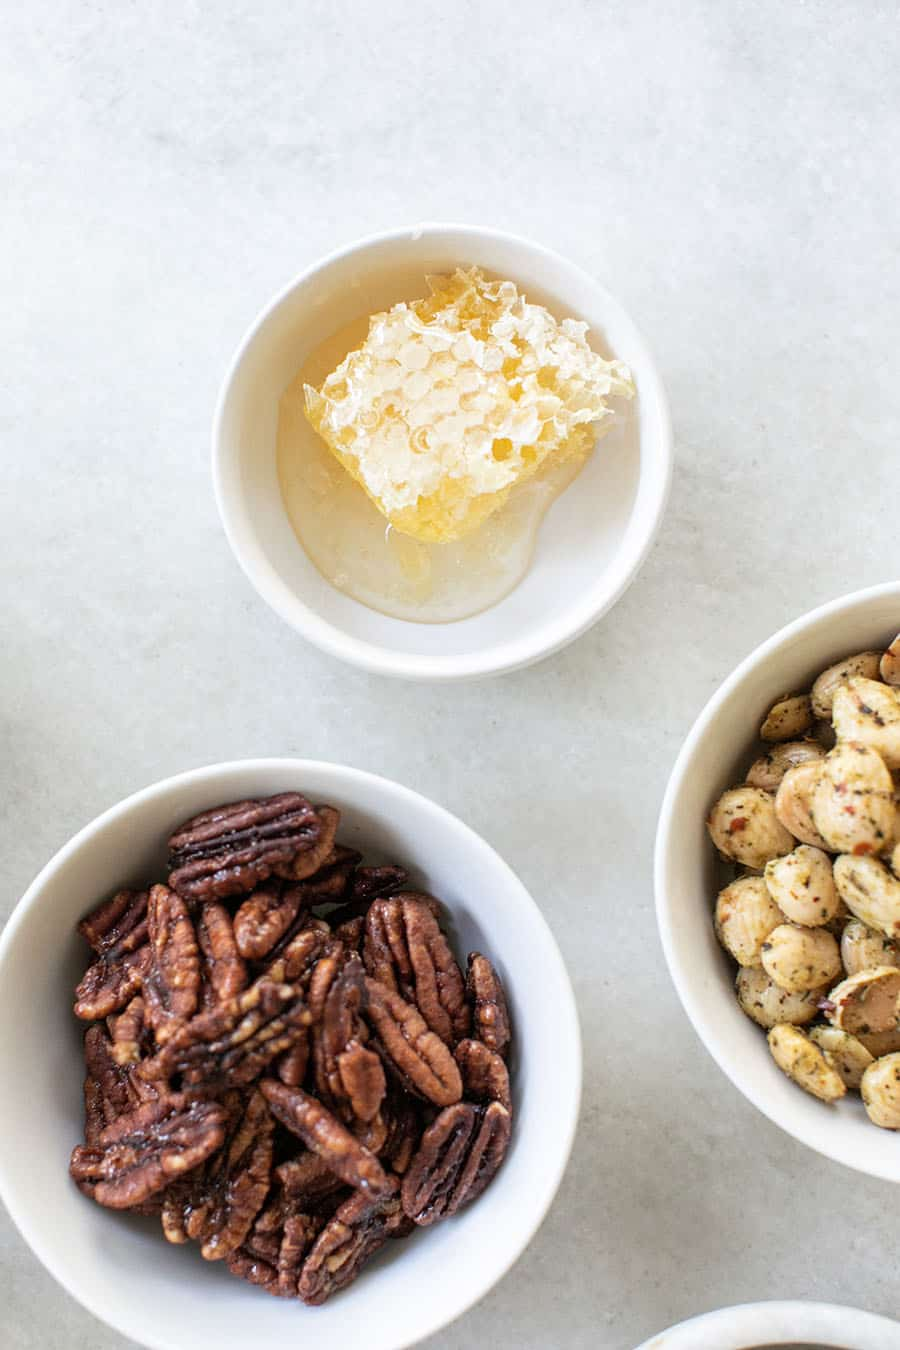 Honey comb in a white bowl with almonds and walnuts